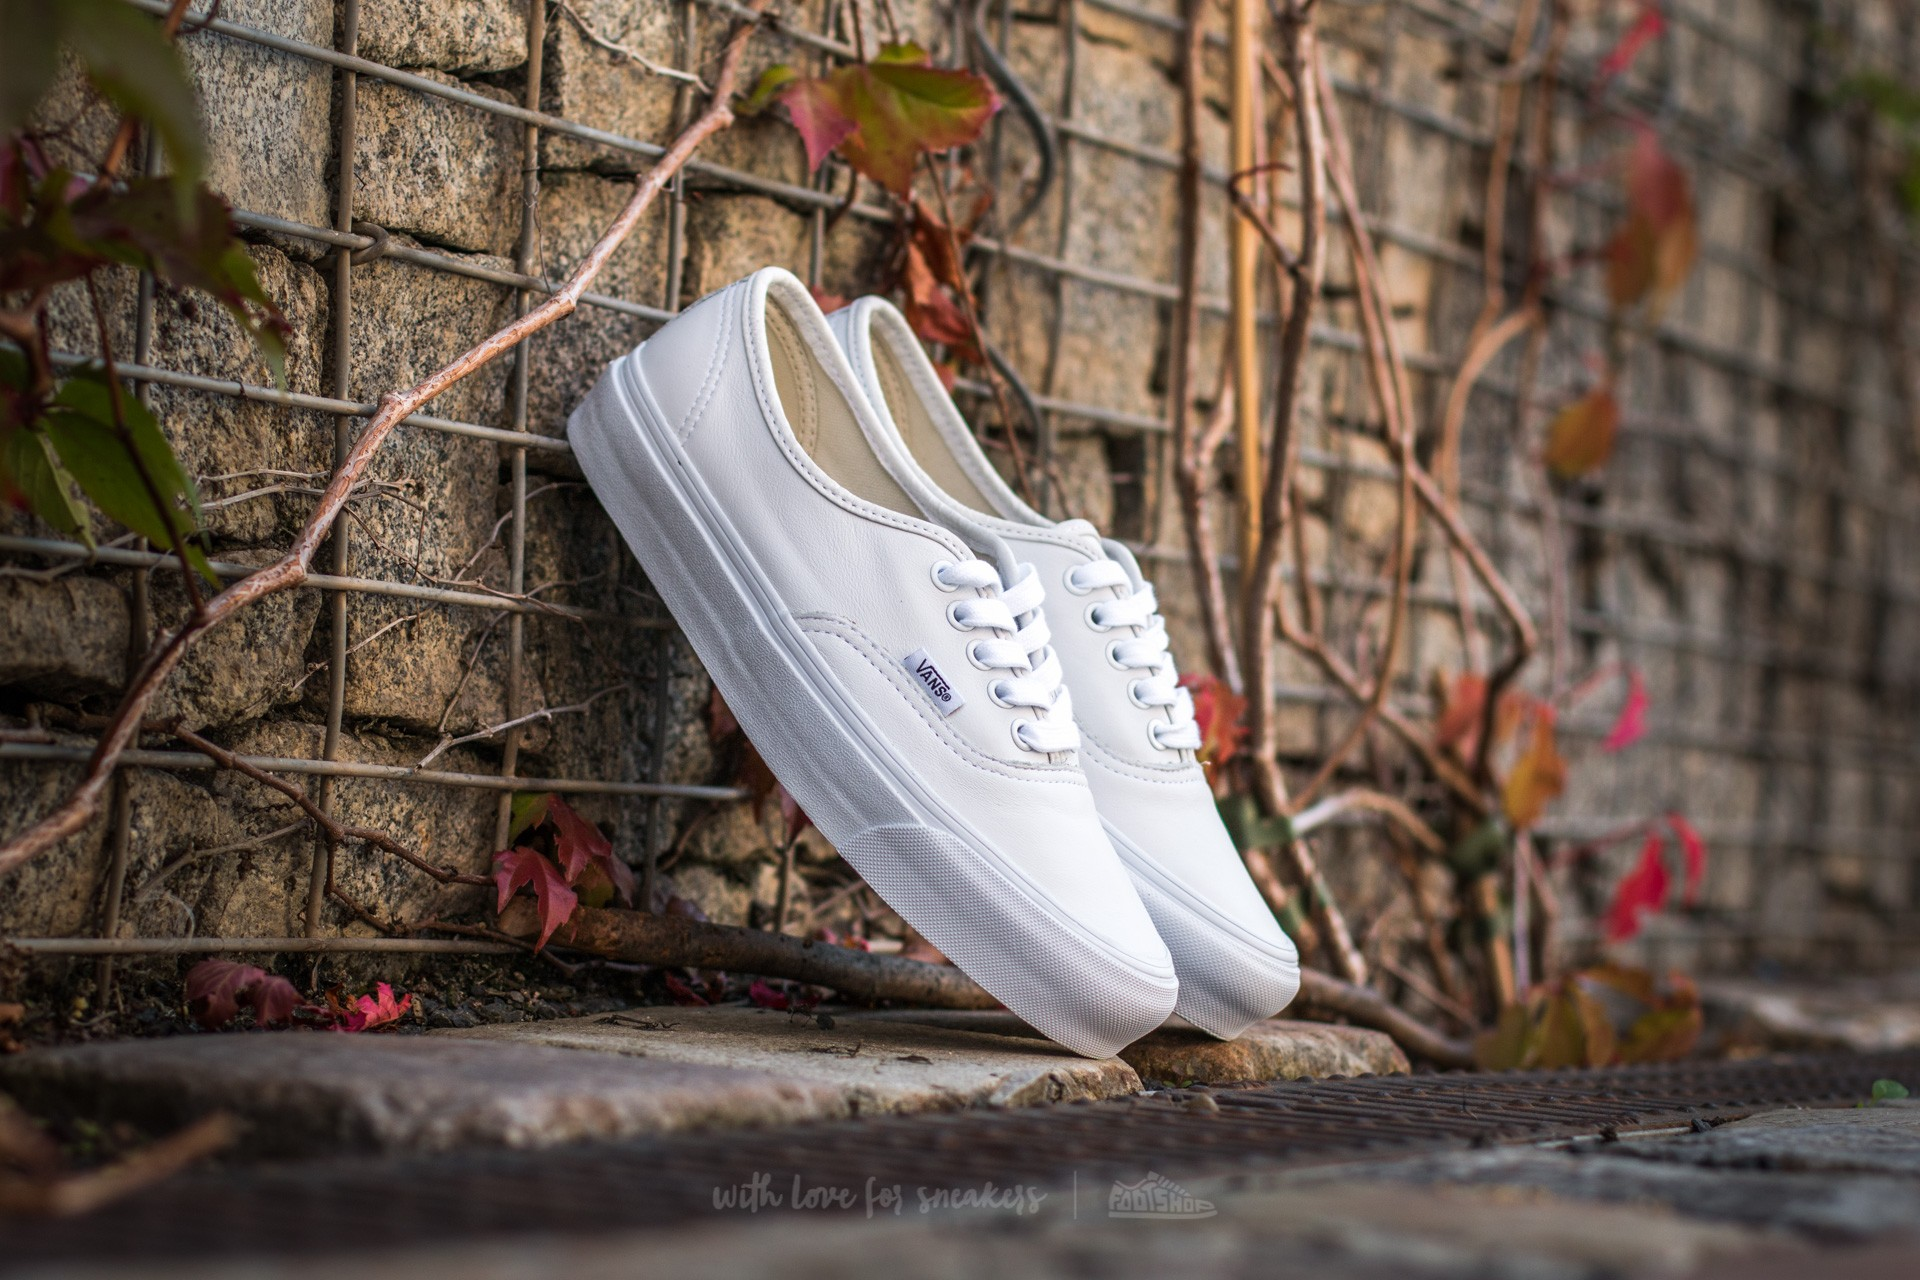 Vans OG Authentic LX VLT